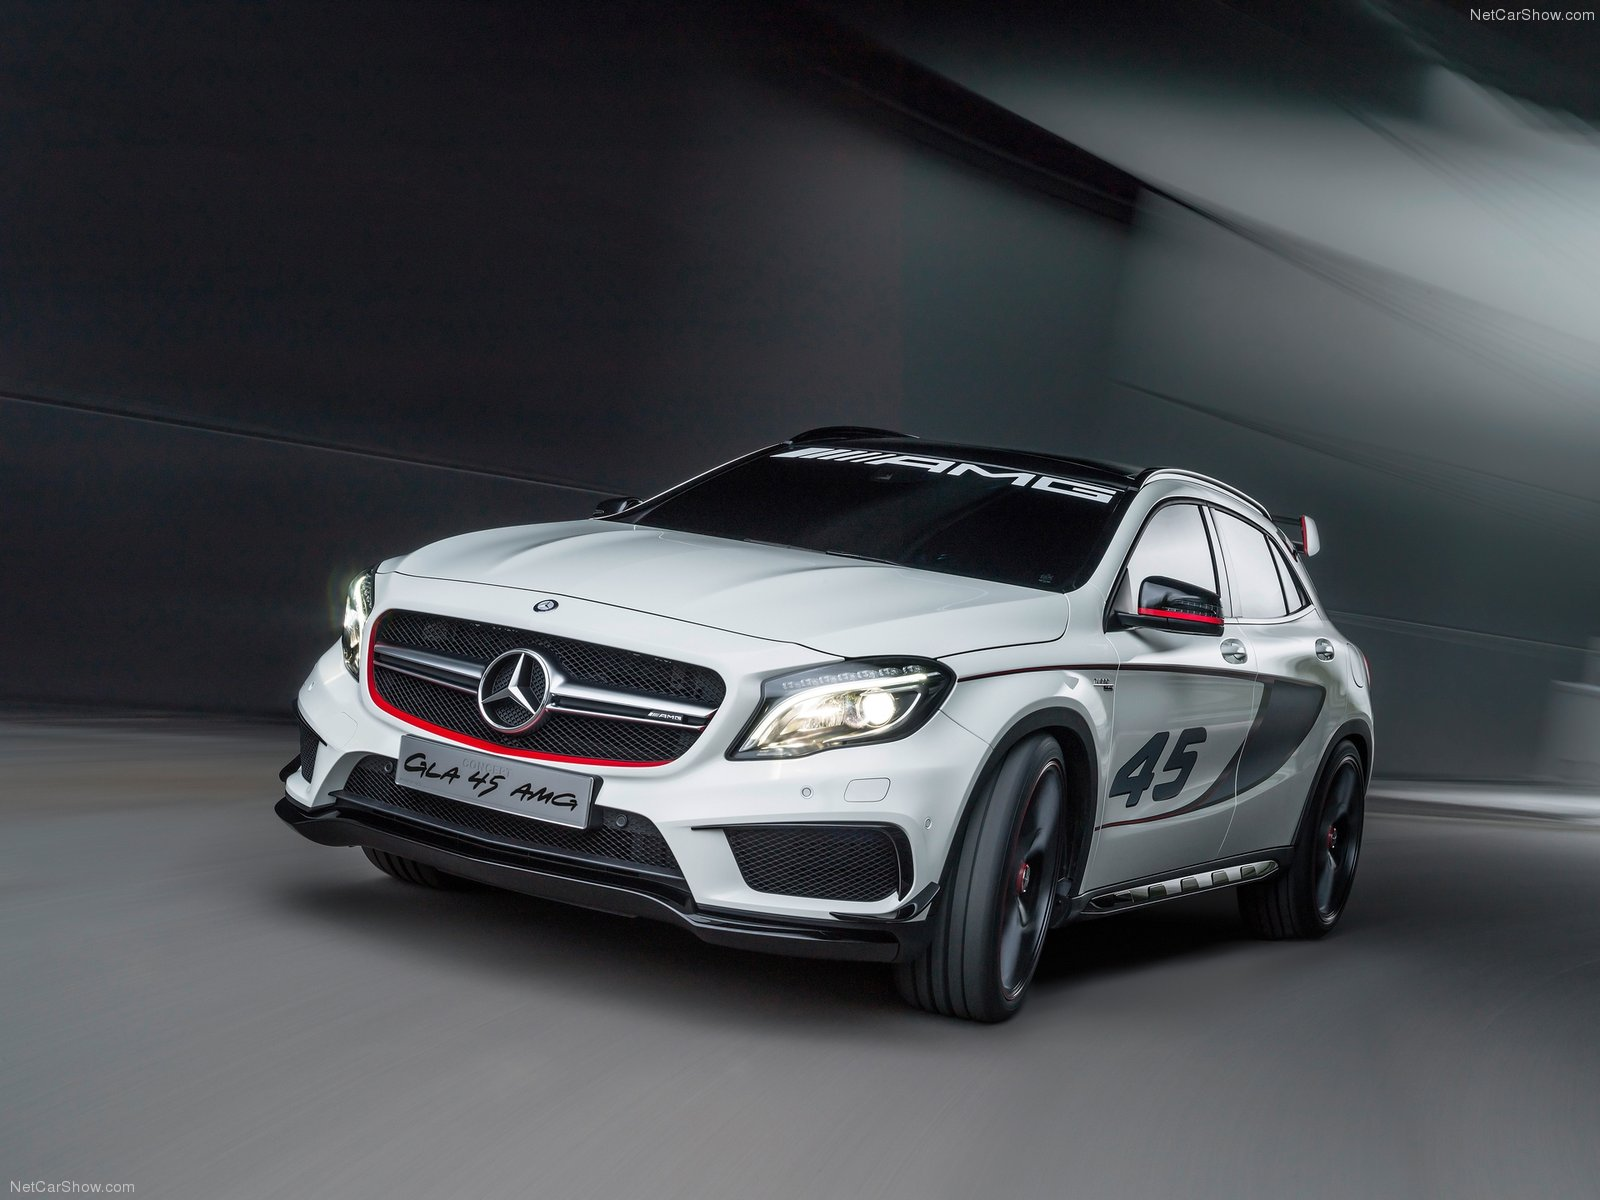 Mercedes-Benz-GLA45_AMG_Concept_2013_1600x1200_wallpaper_02.jpg